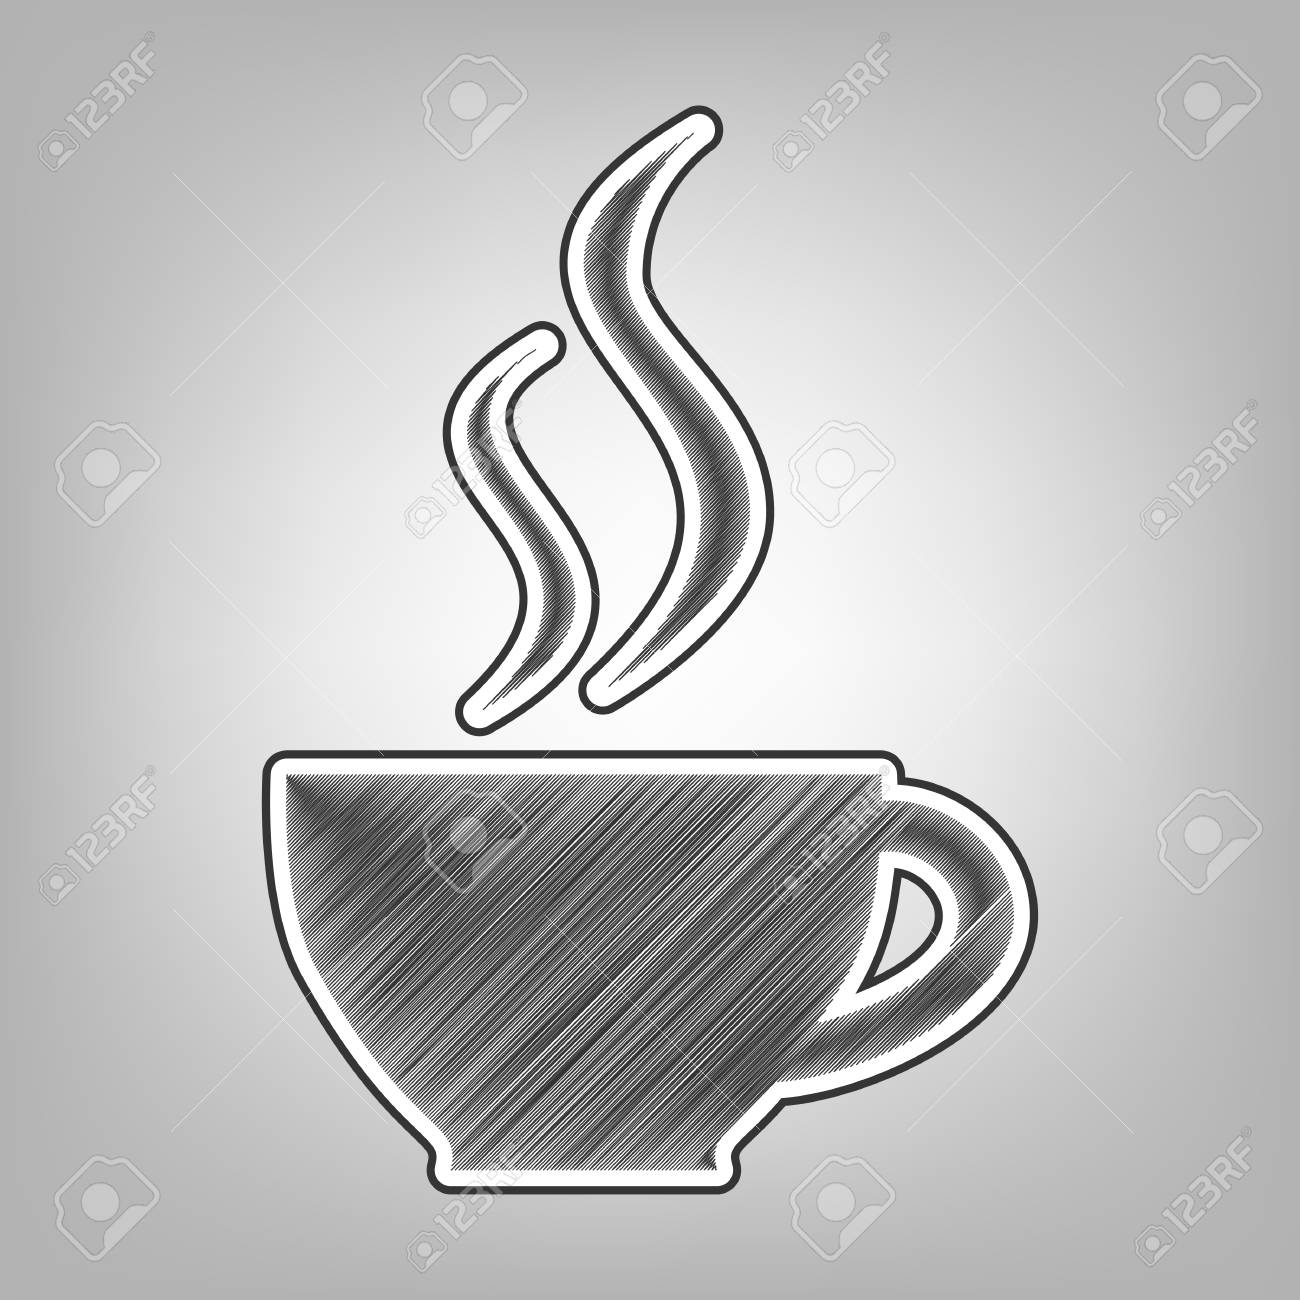 Cup sign with two small streams of smoke vector pencil sketch imitation dark